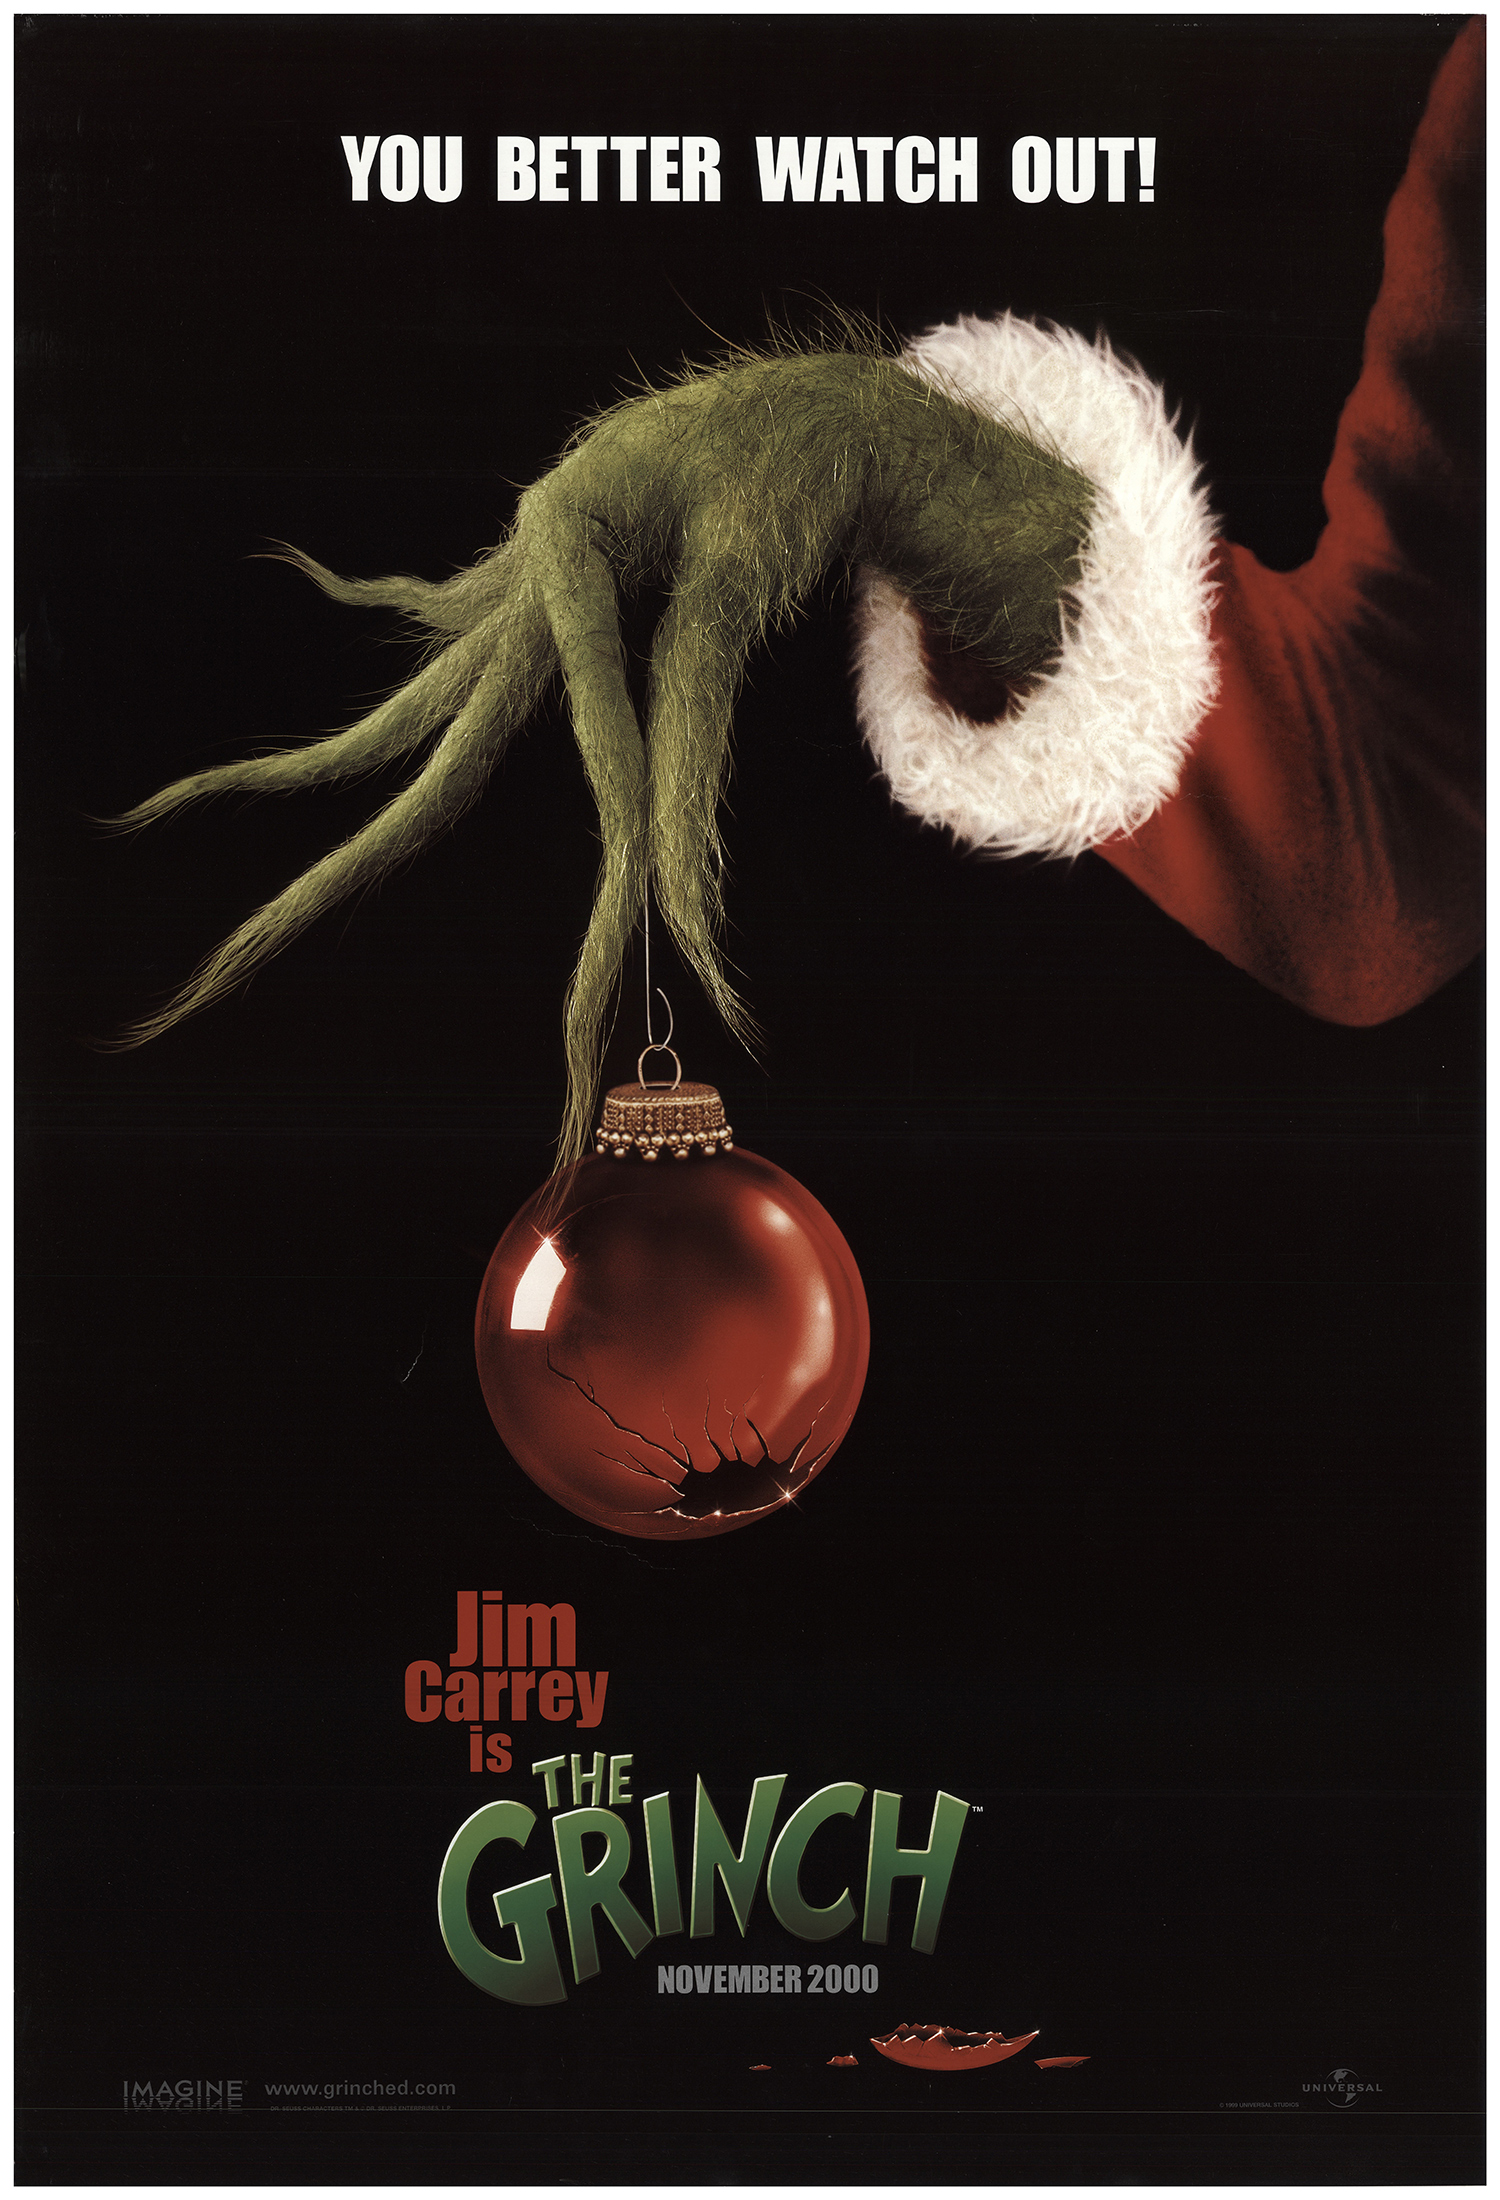 How The Grinch Stole Christmas 2000 Whos.How The Grinch Stole Christmas 2000 Original Movie Poster U S One Sheet Advance Fff 74054